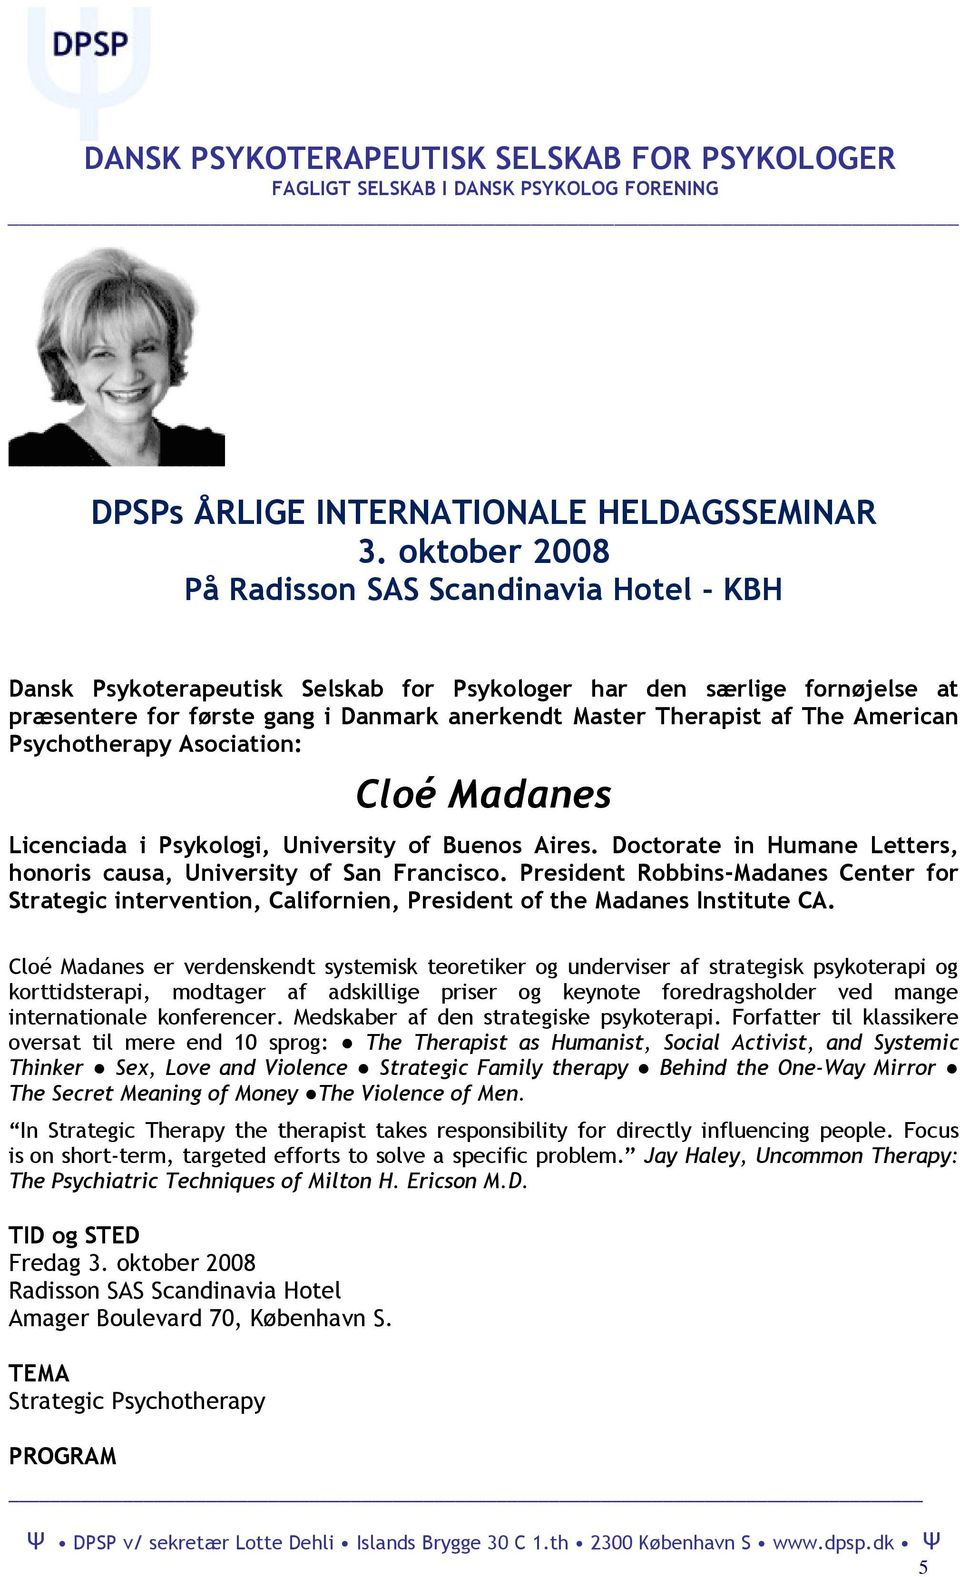 American Psychotherapy Asociation: Cloé Madanes Licenciada i Psykologi, University of Buenos Aires. Doctorate in Humane Letters, honoris causa, University of San Francisco.